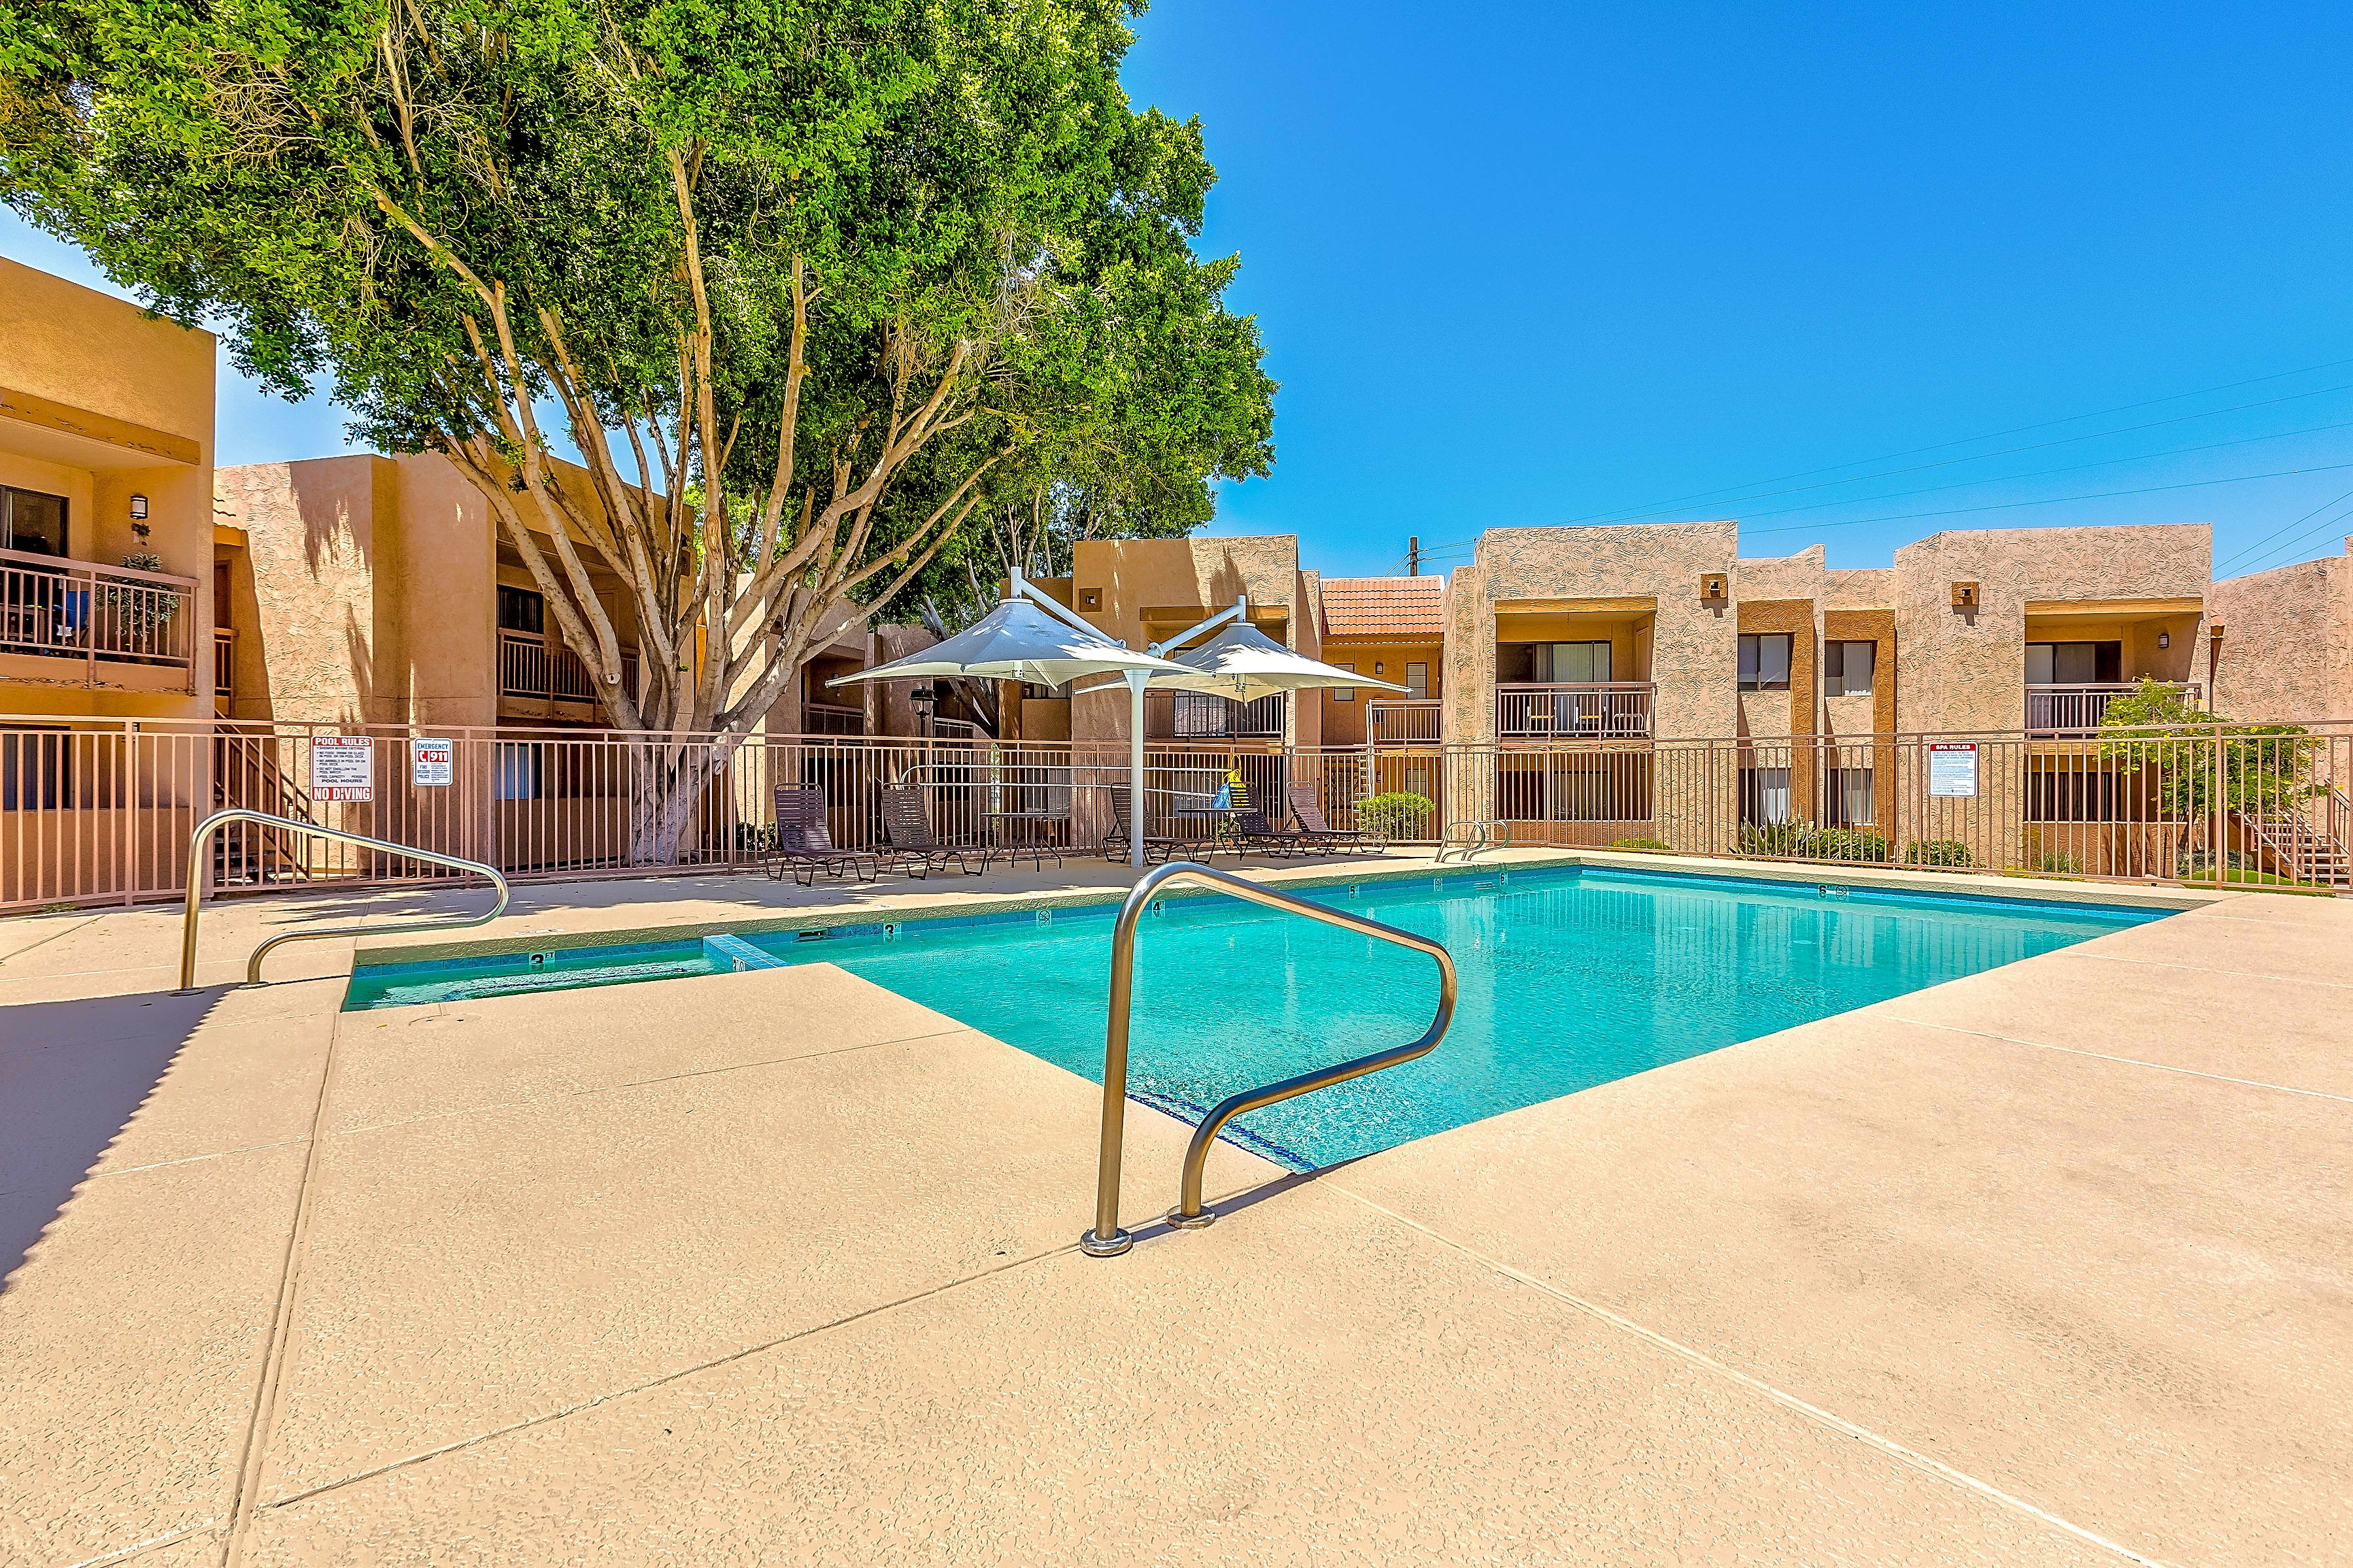 Grand Canyon University (GCU) Off-Campus Housing | Uloop